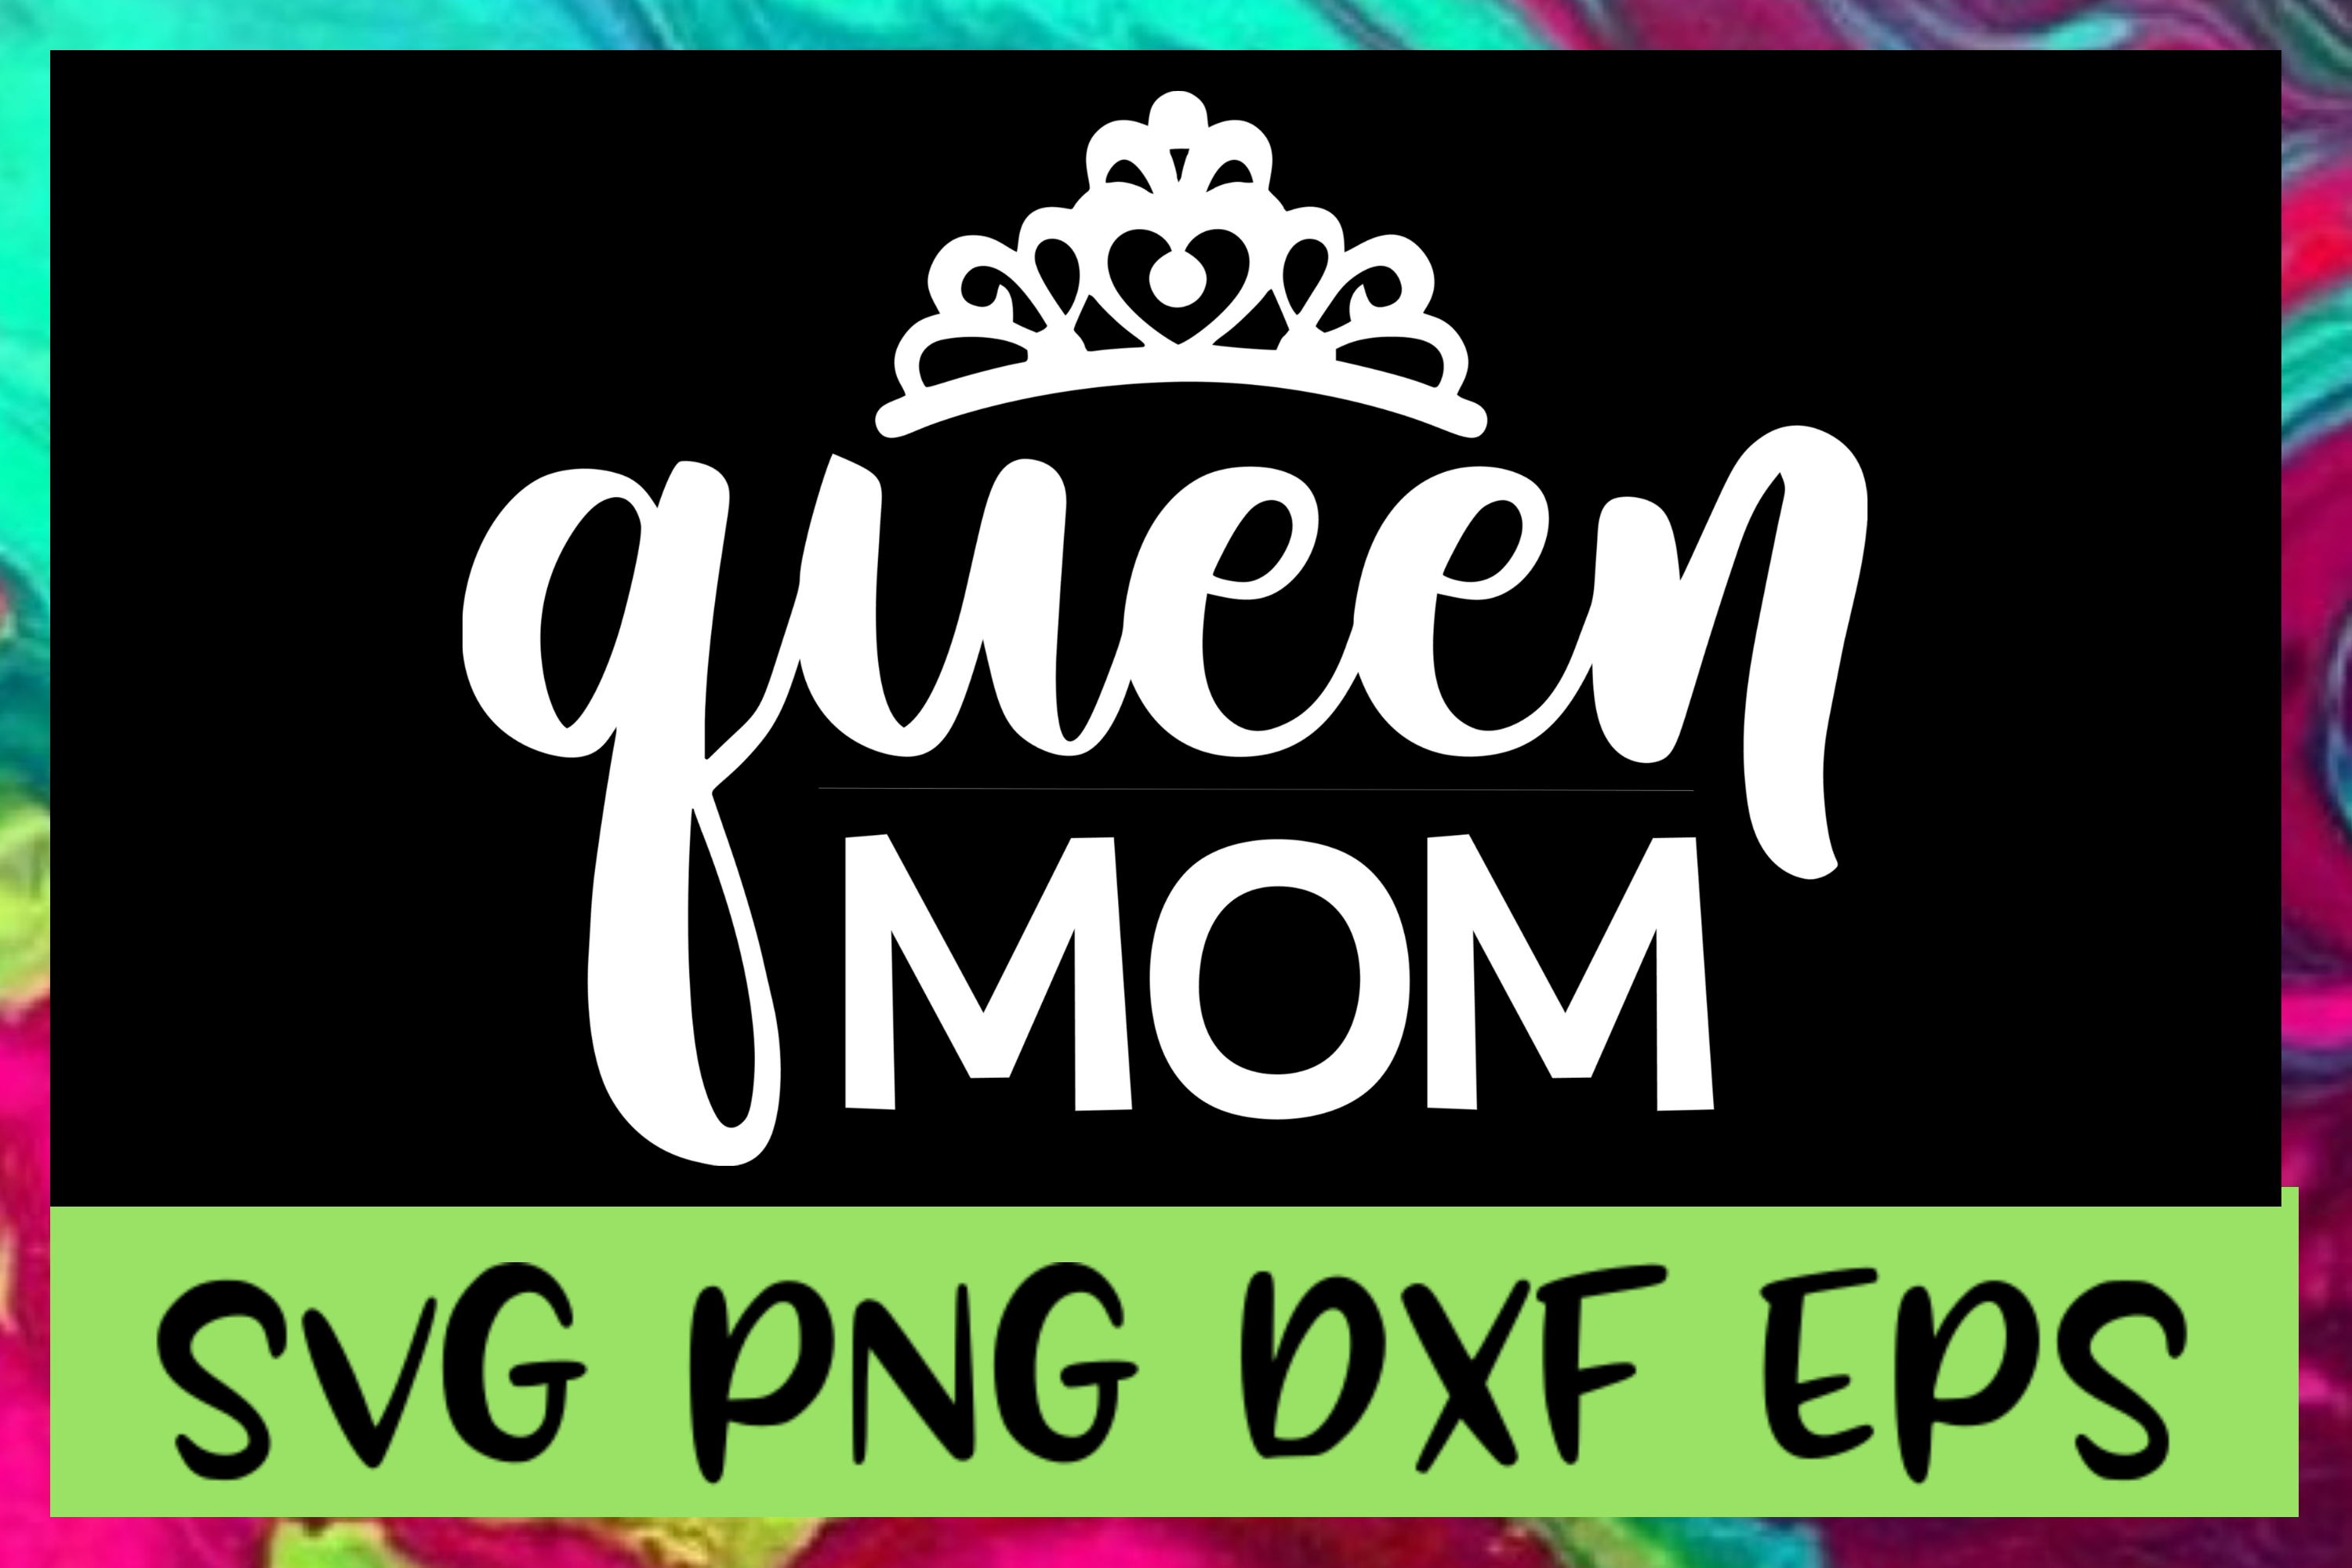 Queen Mom Mother's Day SVG PNG DXF & EPS Design Files example image 1